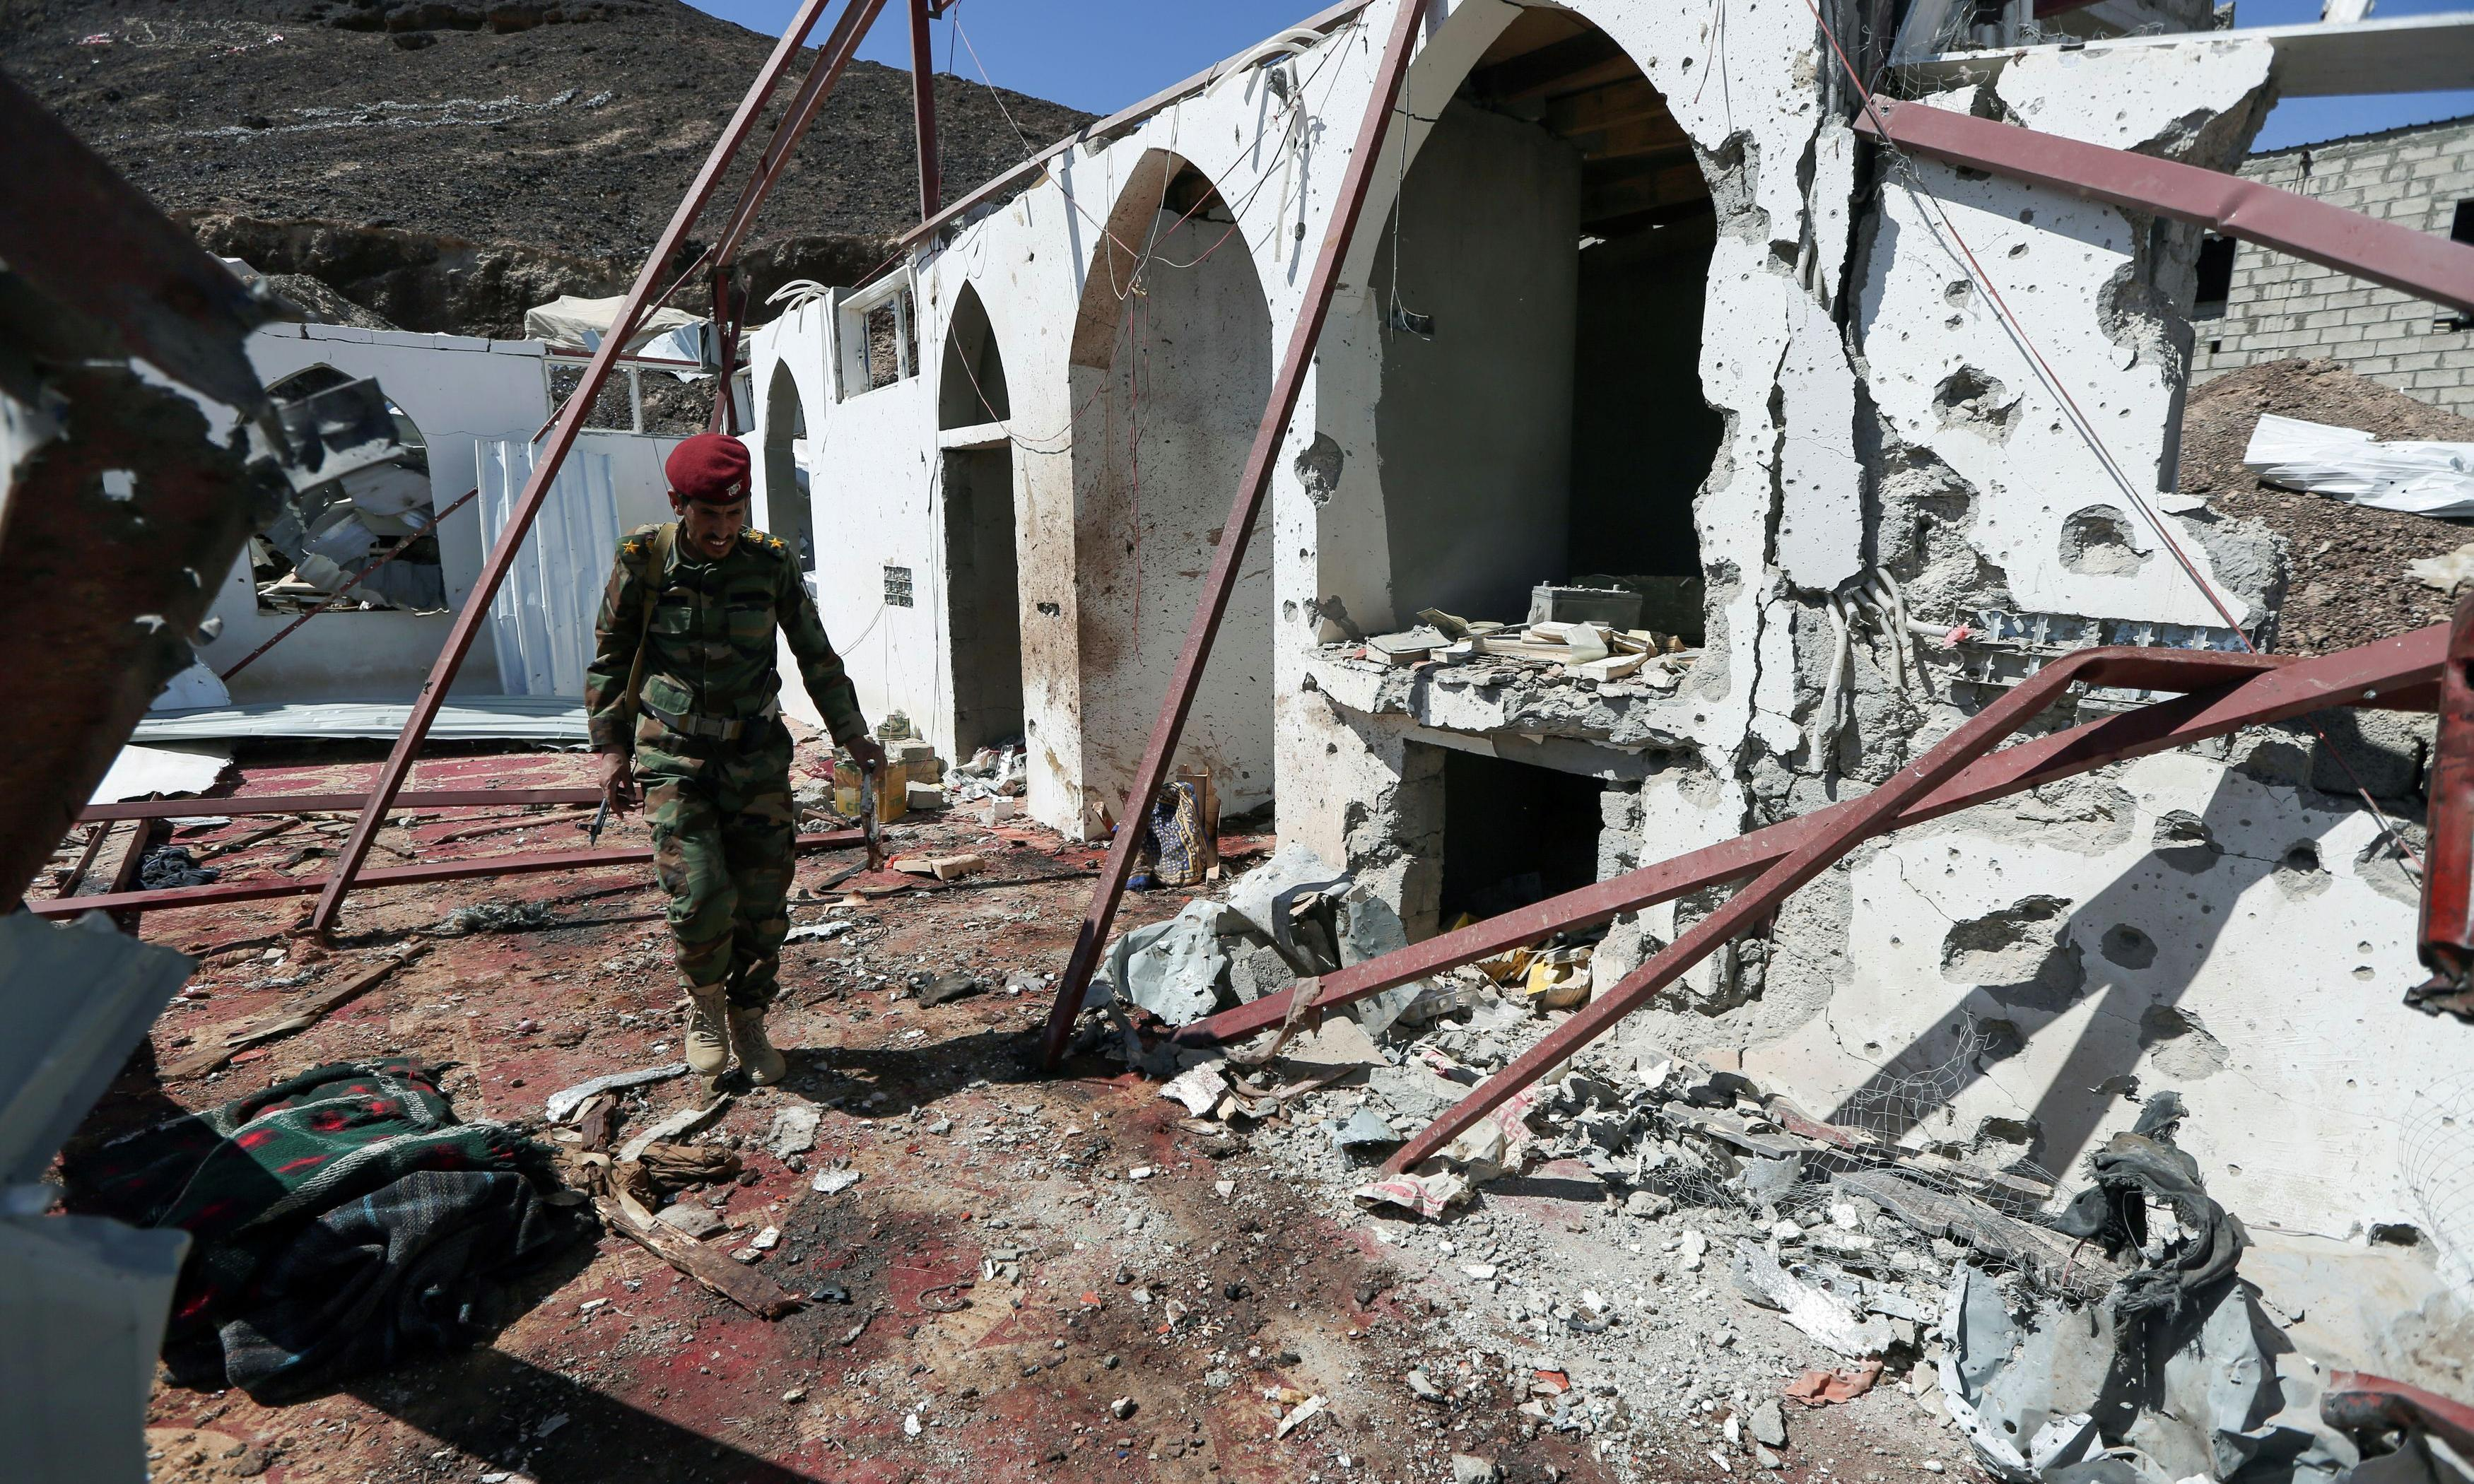 Yemen rise in violence threatens to derail peace moves, UN warns